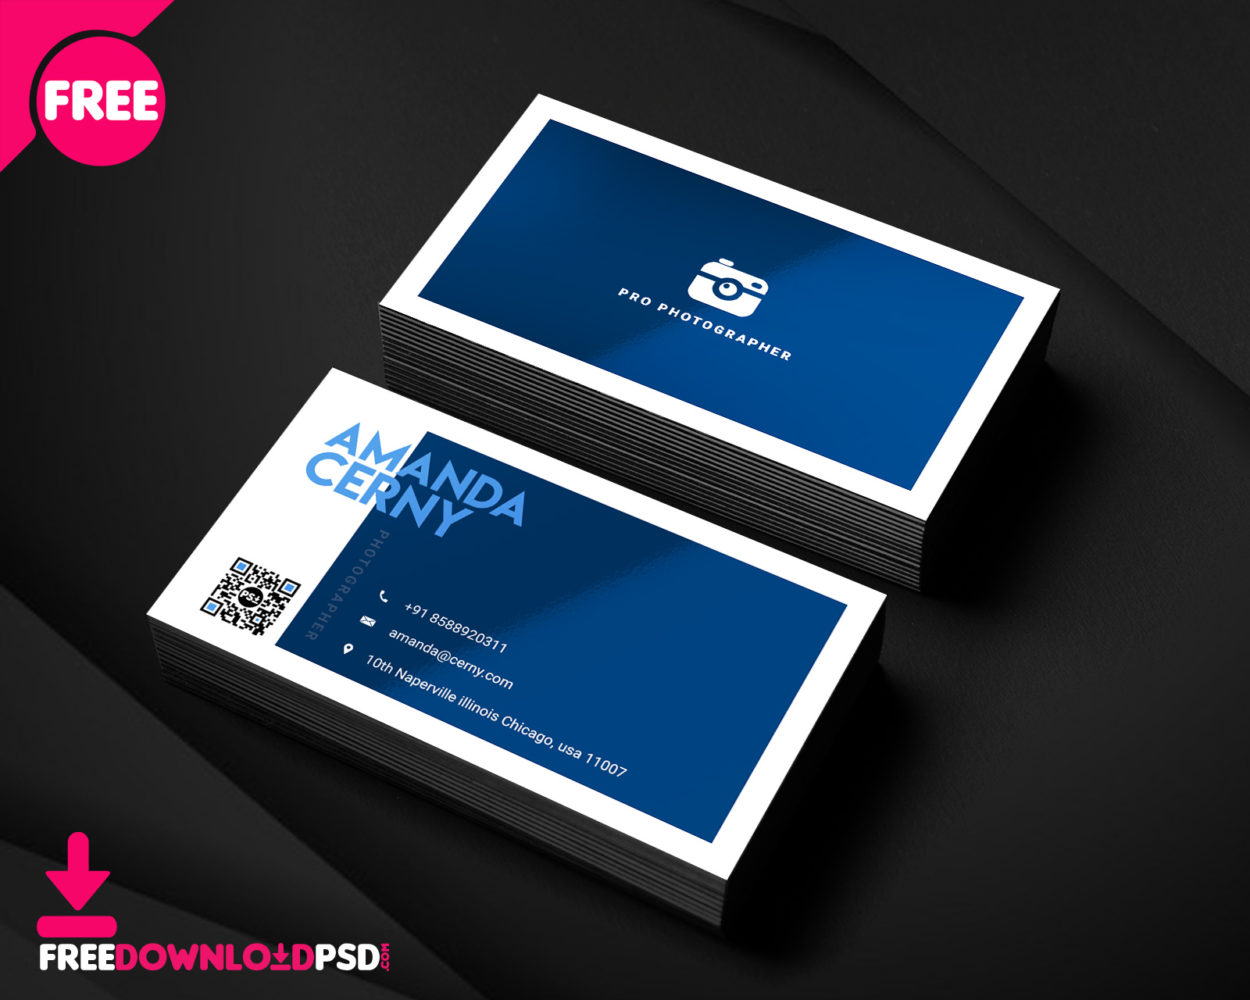 150 free business card psd templates photographer business card psd template wajeb Image collections